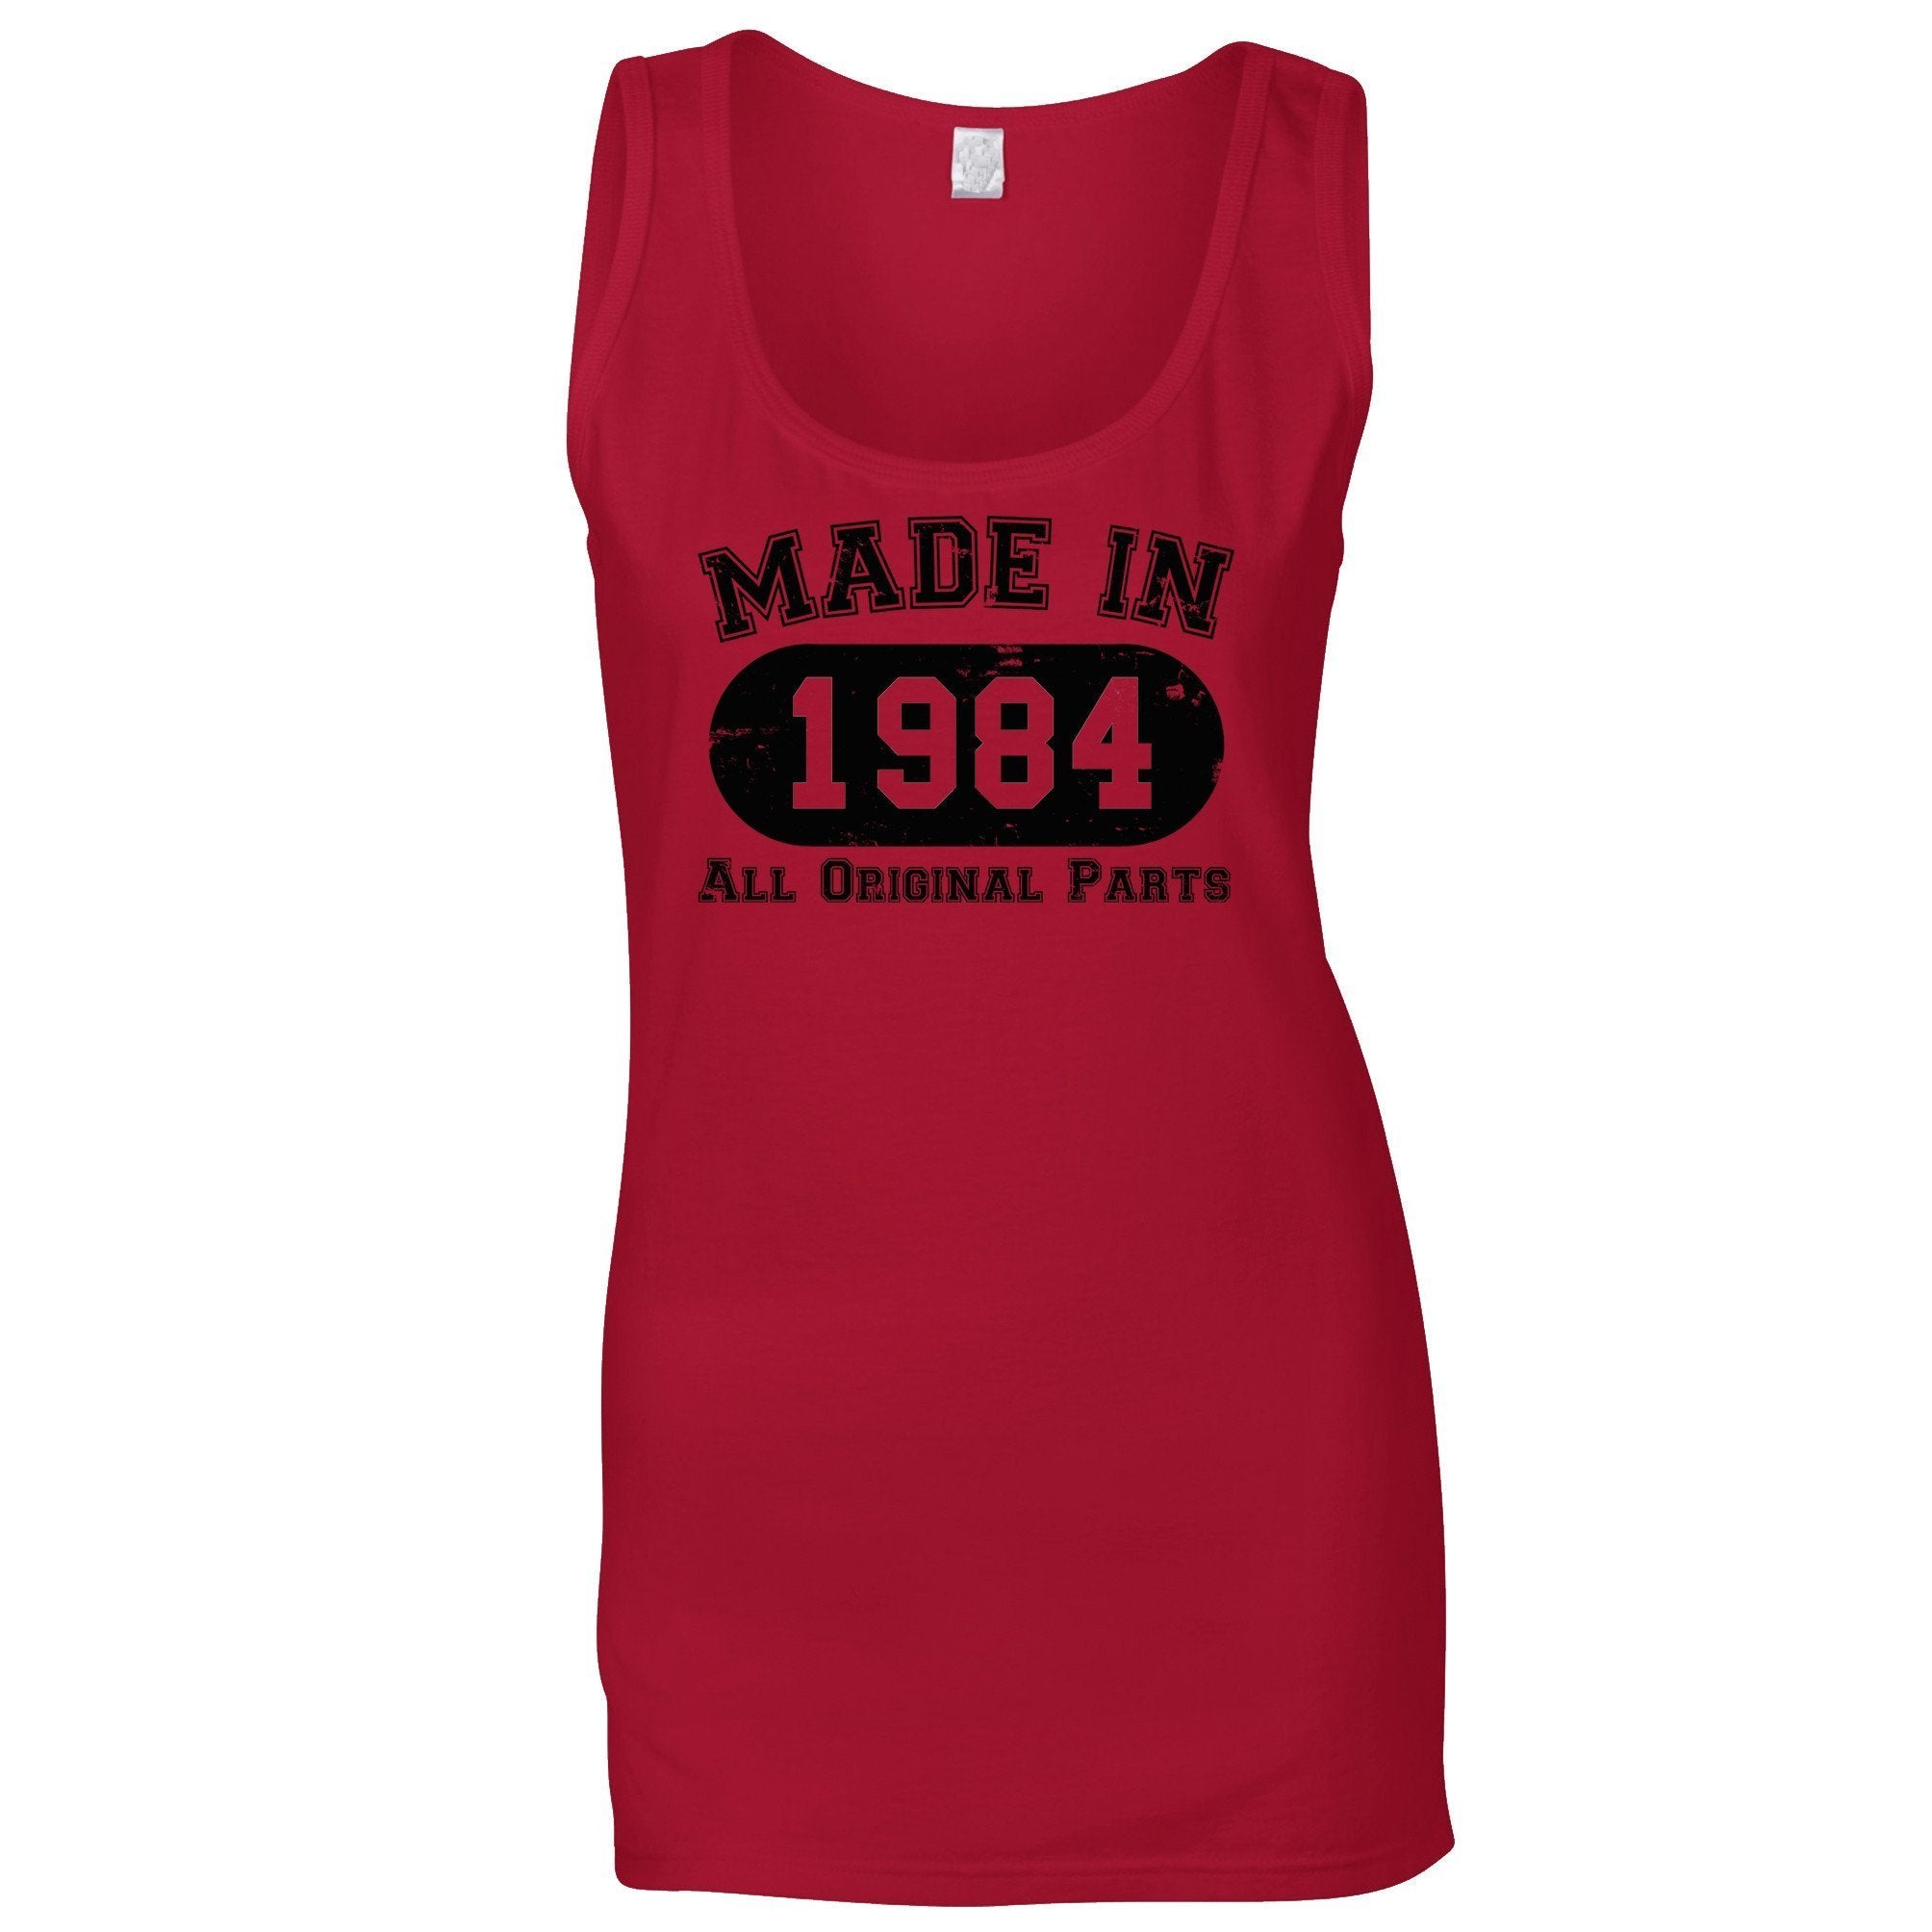 Made in 1984 All Original Parts Womens Vest [Distressed]